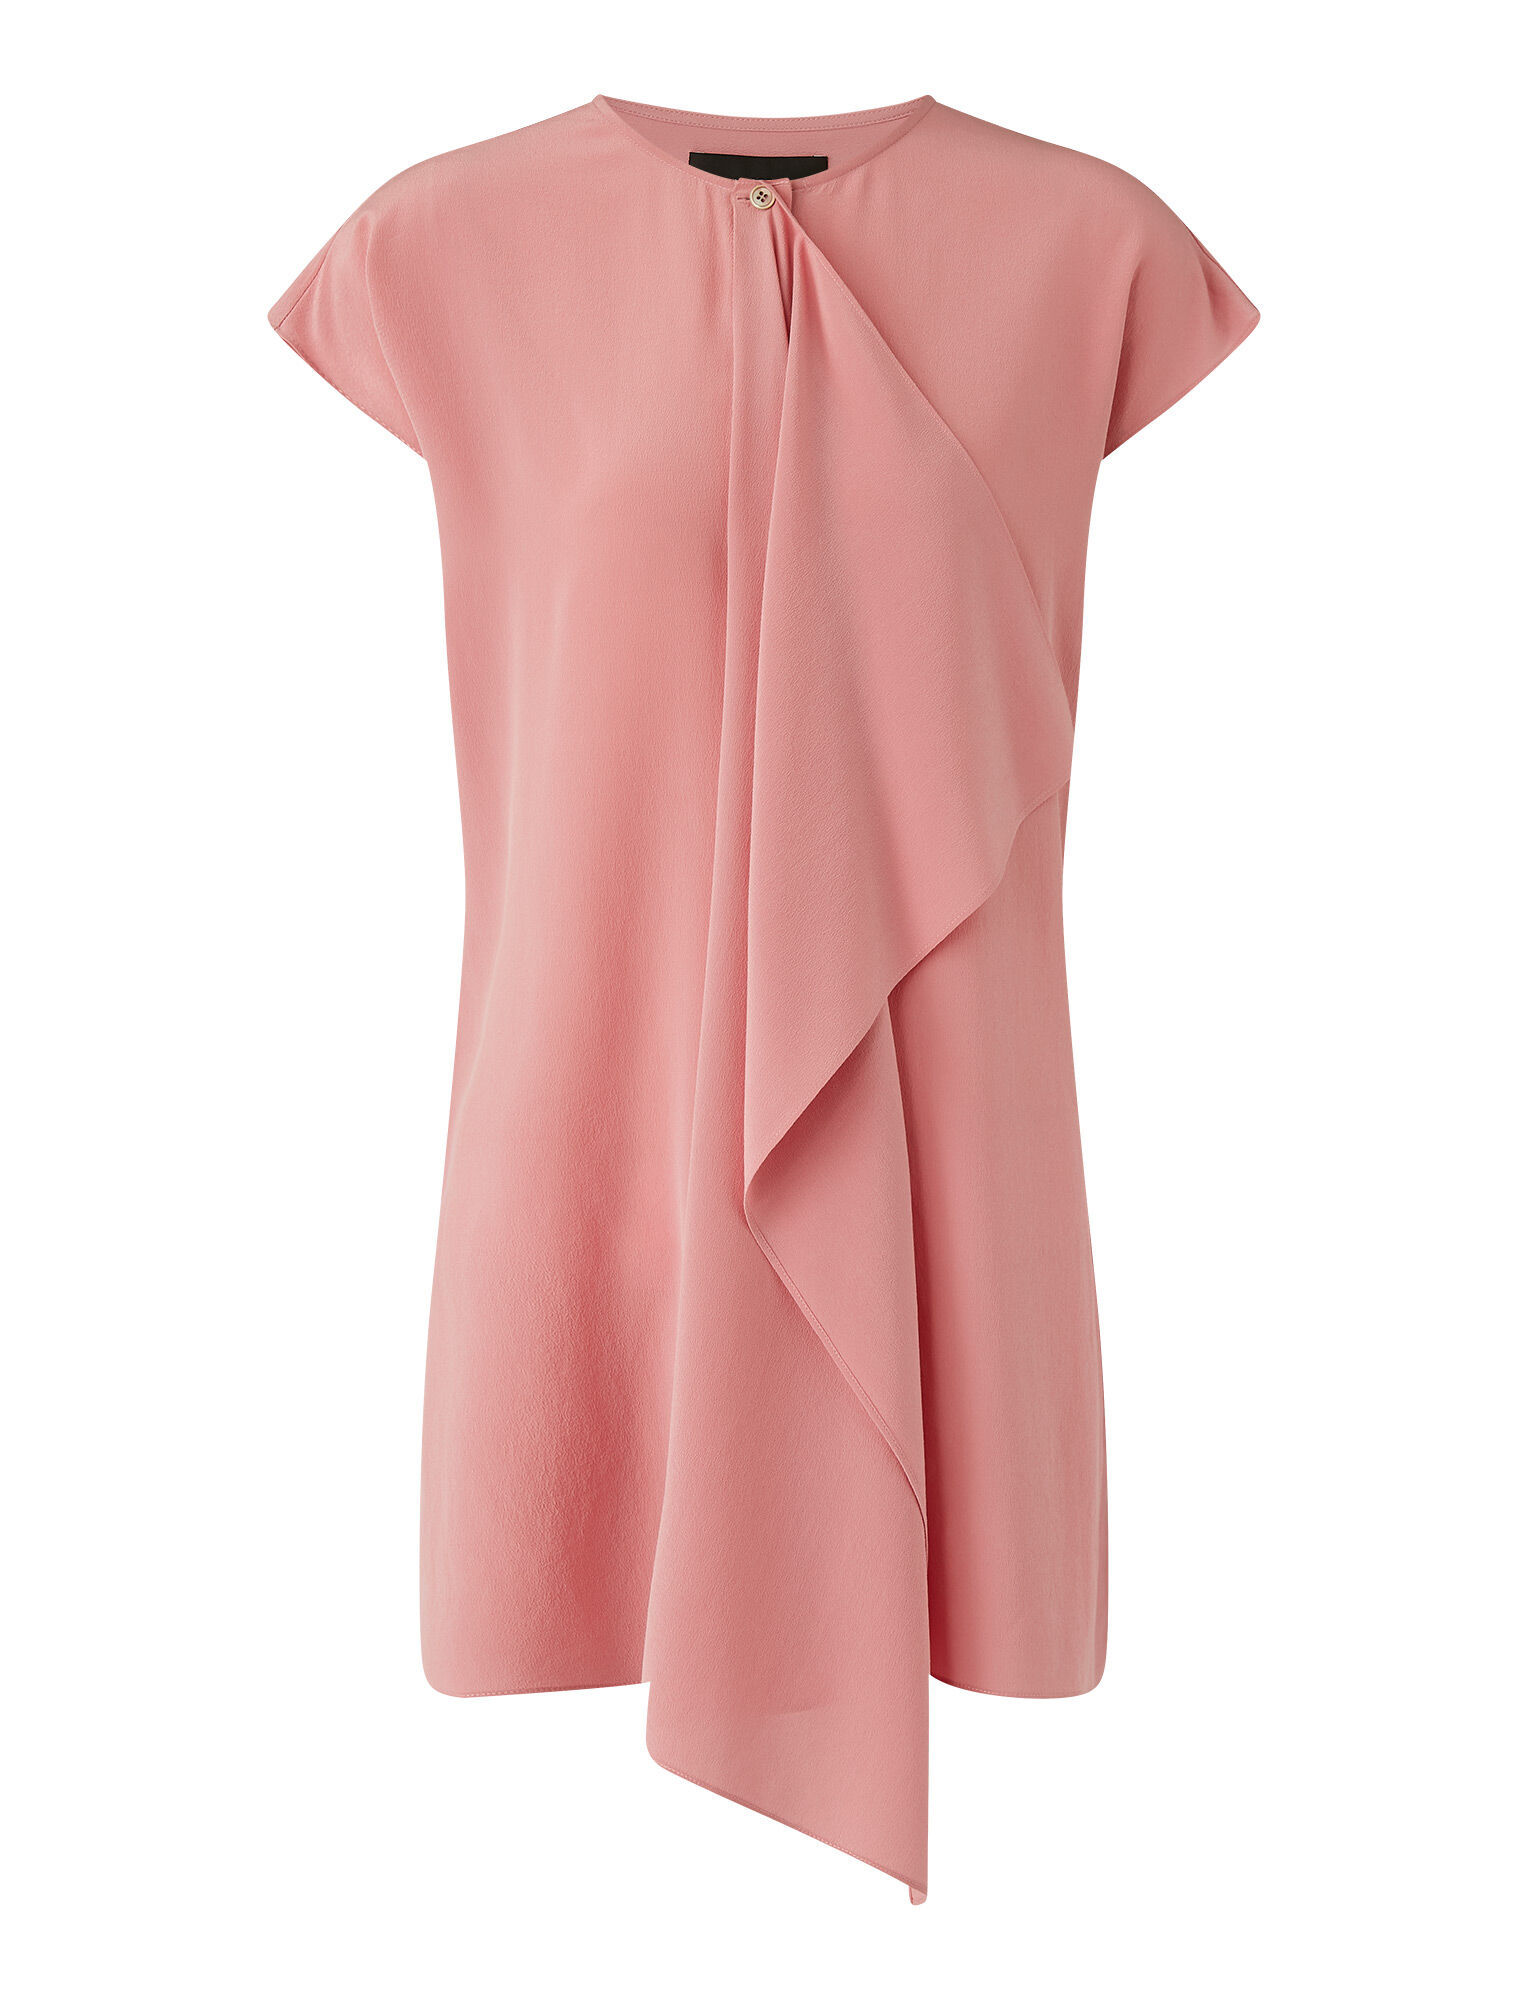 Joseph, Bennia Crepe De Chine Blouse, in Rose